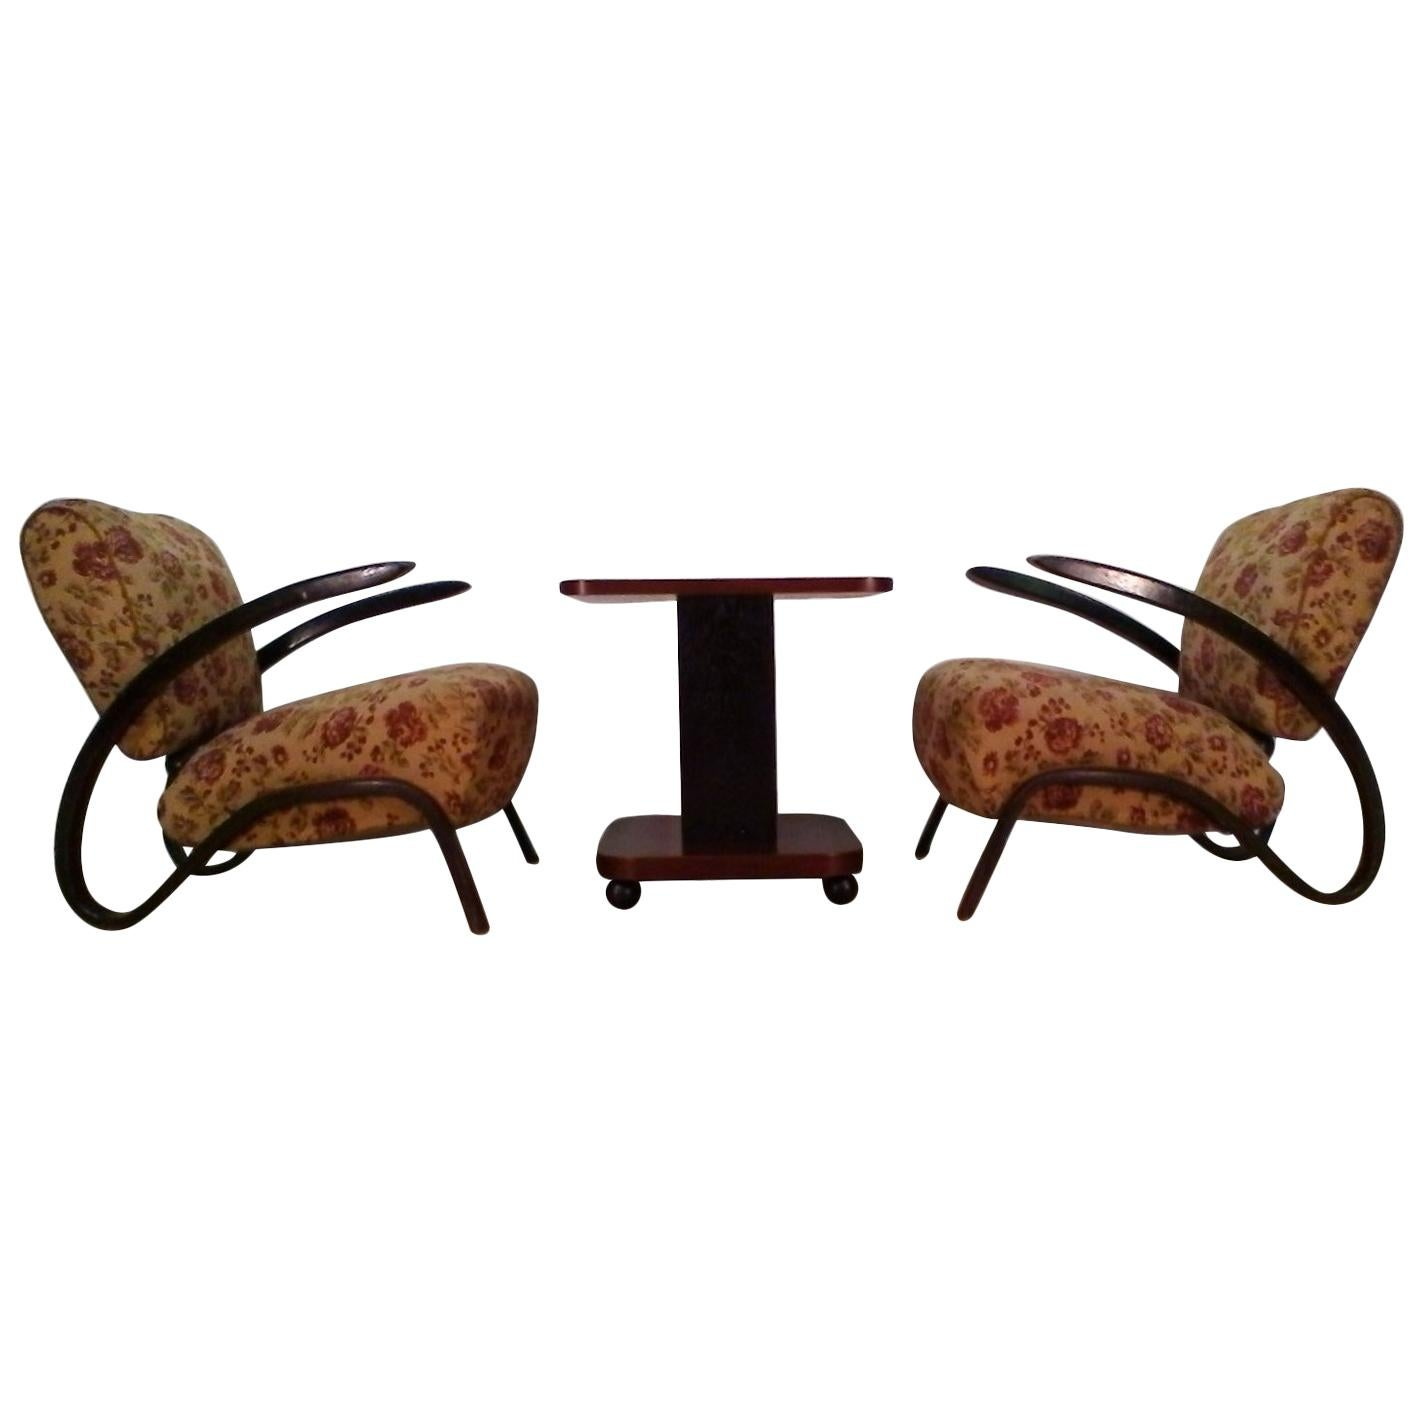 1930 Pair of Rare Jindrich Halabala H-275 Art Deco Armchairs and Coffee Table